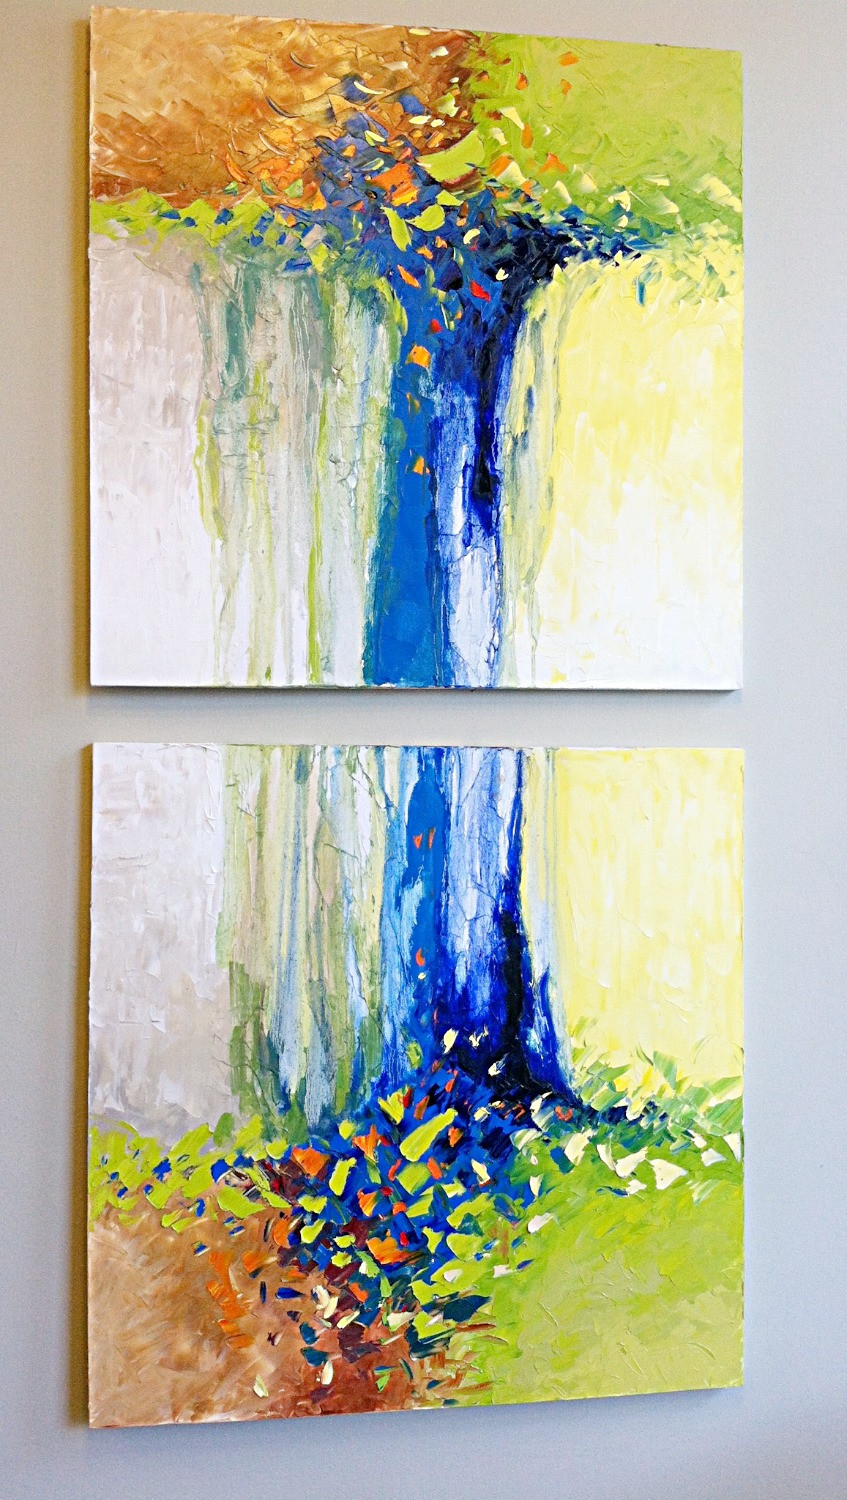 Original oil blue abstract pair of oils by artist Kate Moynihan